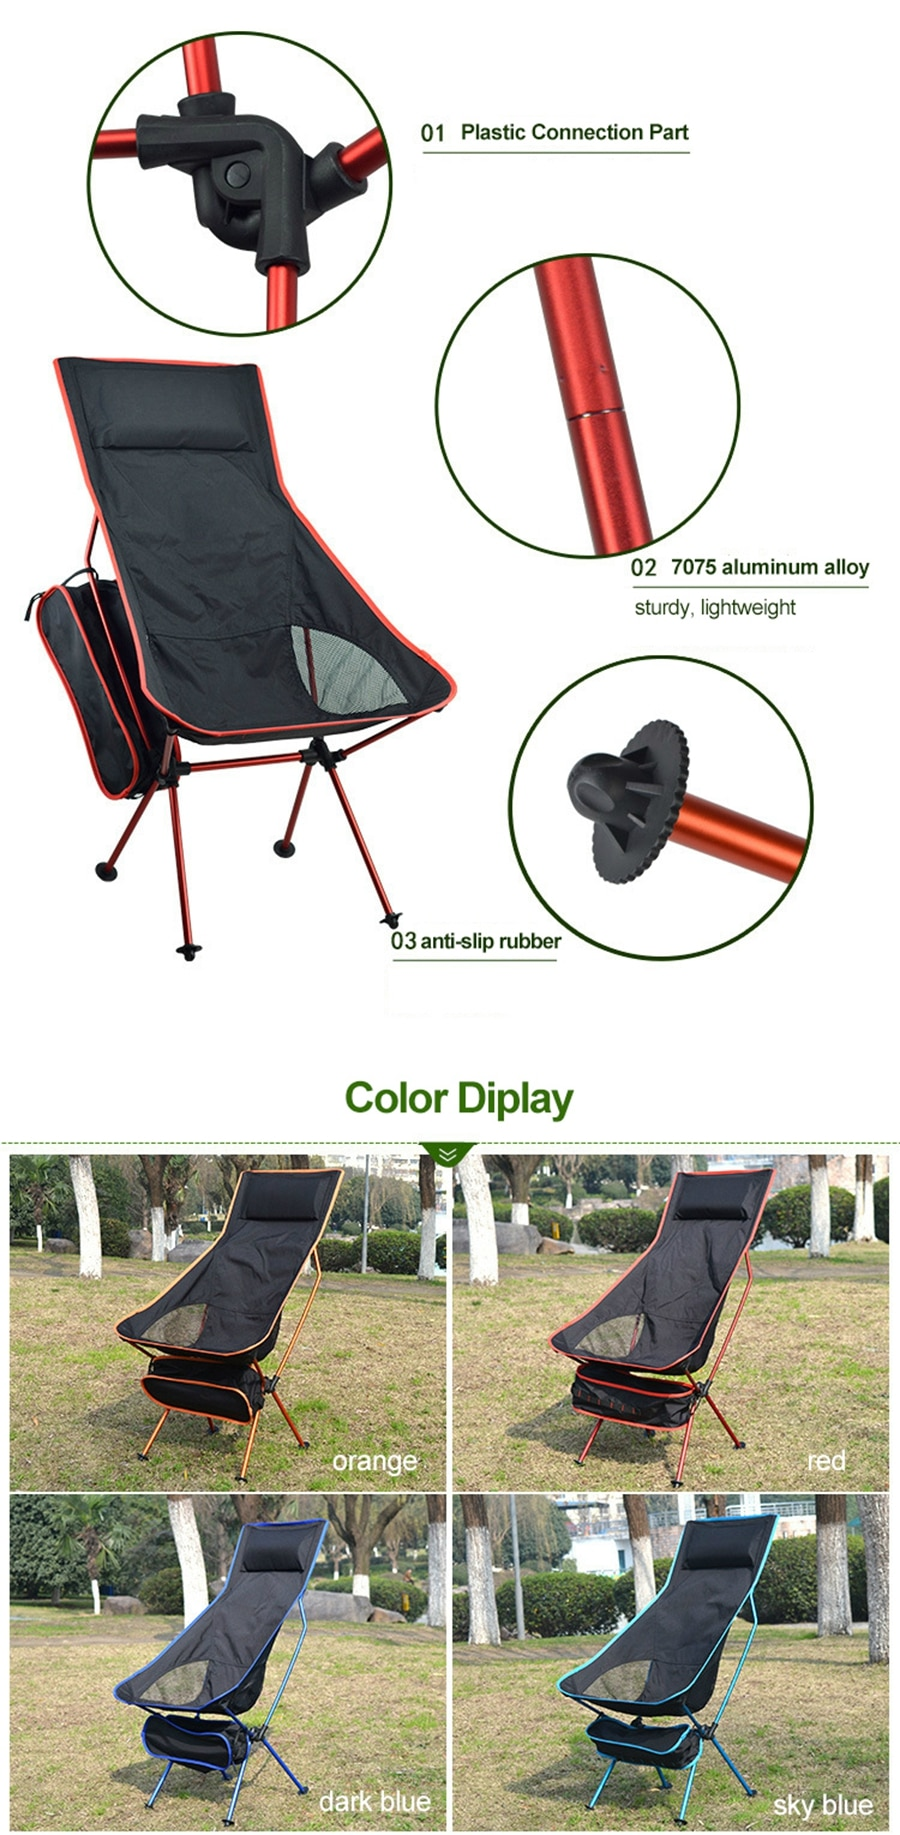 Desert&Fox Camping Chair Multicolor Picnic Beach Collapsible Backrest Chairs with Carry Bag Outdoor Portable Foldable Chair